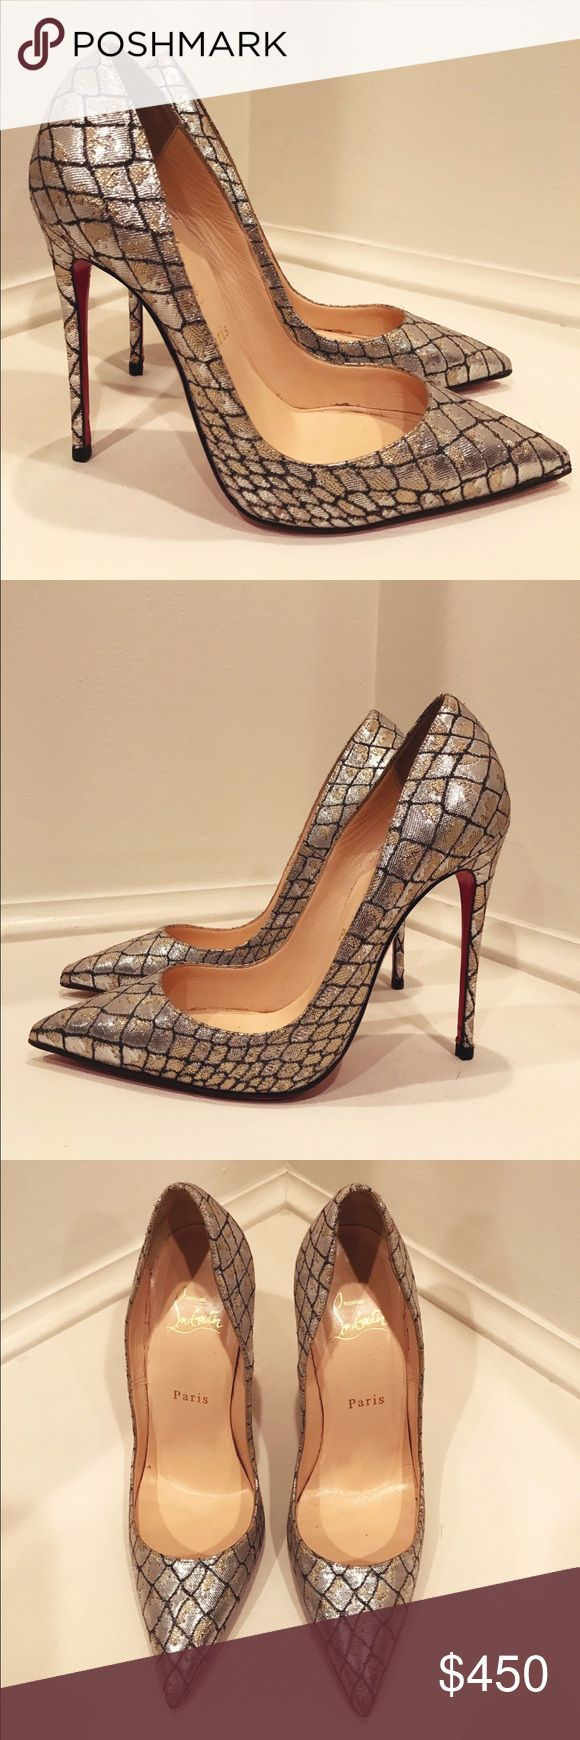 • Christian Louboutin • Decollete Snake Pump -Christian Louboutin  -100% Authentic -Decollete  -Snake-Embossed Metallic Point-Toe Pump -Silver -4' Stiletto Heel -Size 38 -Soles were Professionally Re-Painted  -No Damage or Ware  -Excellent Condition  -No box, only dust bag Christian Louboutin Shoes Heels